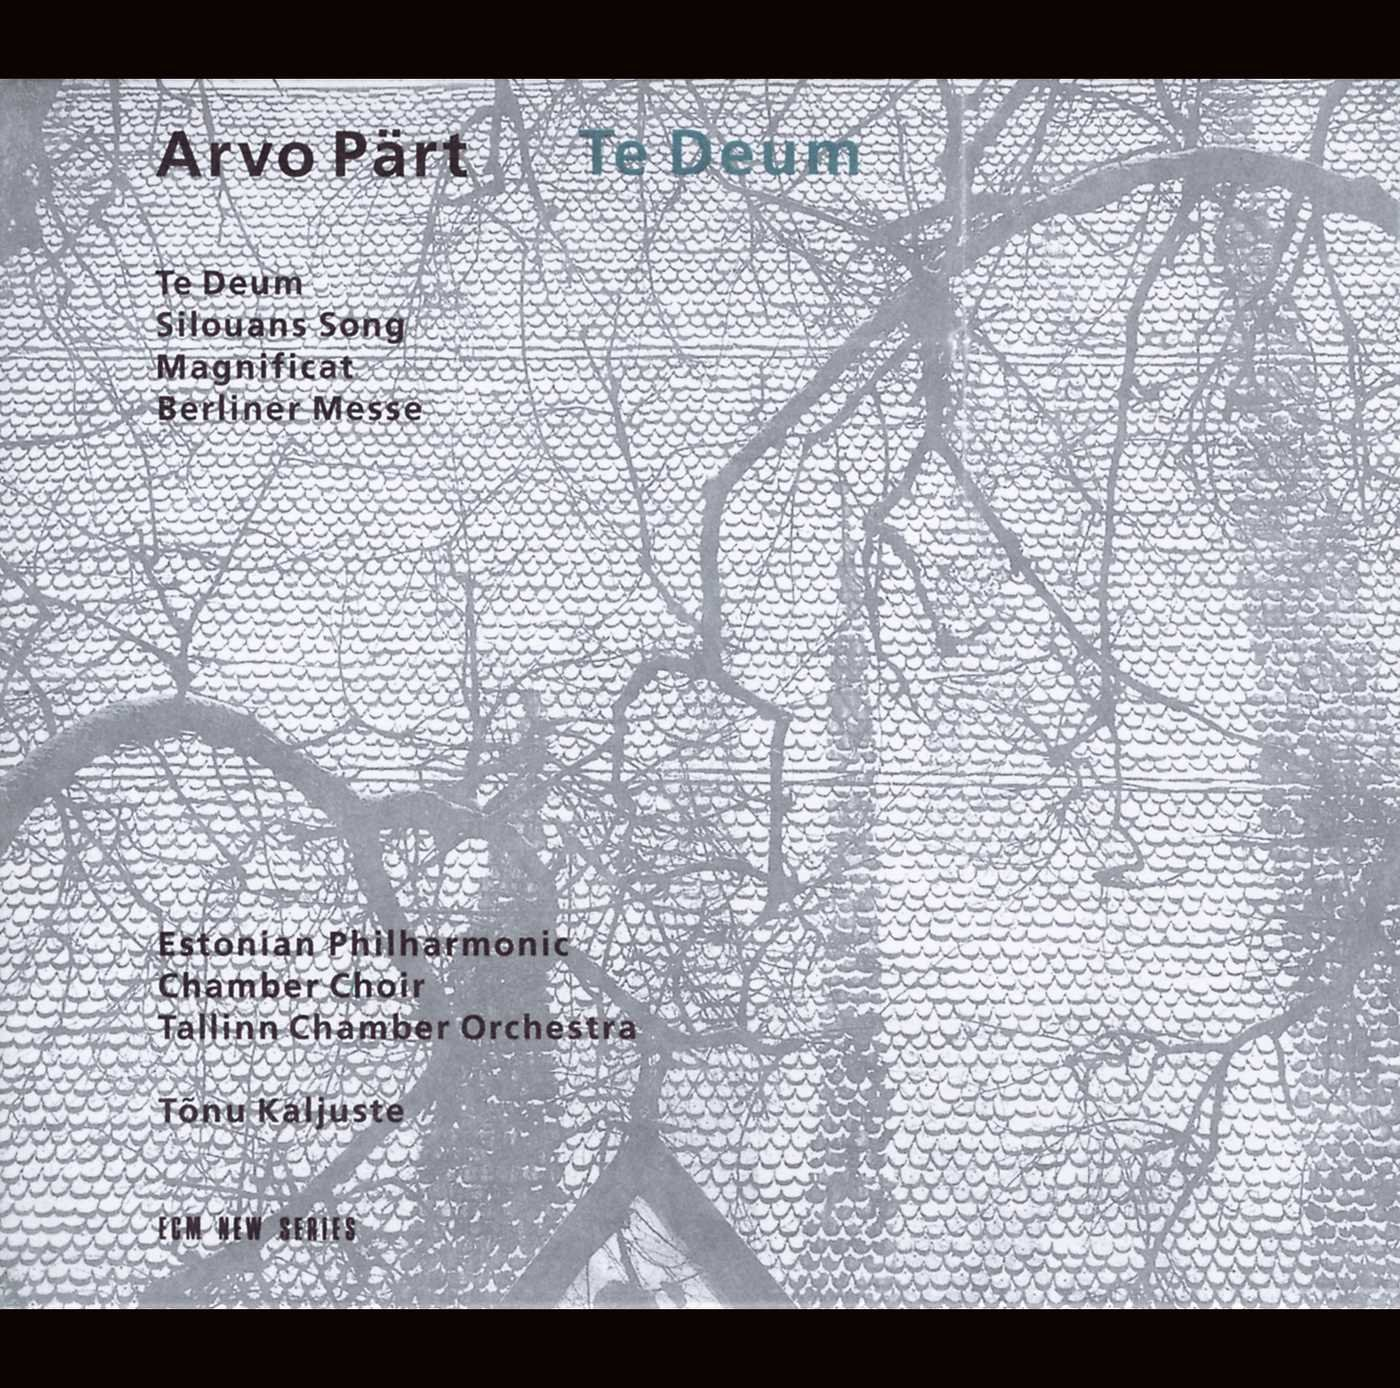 Arvo Part: Te Deum